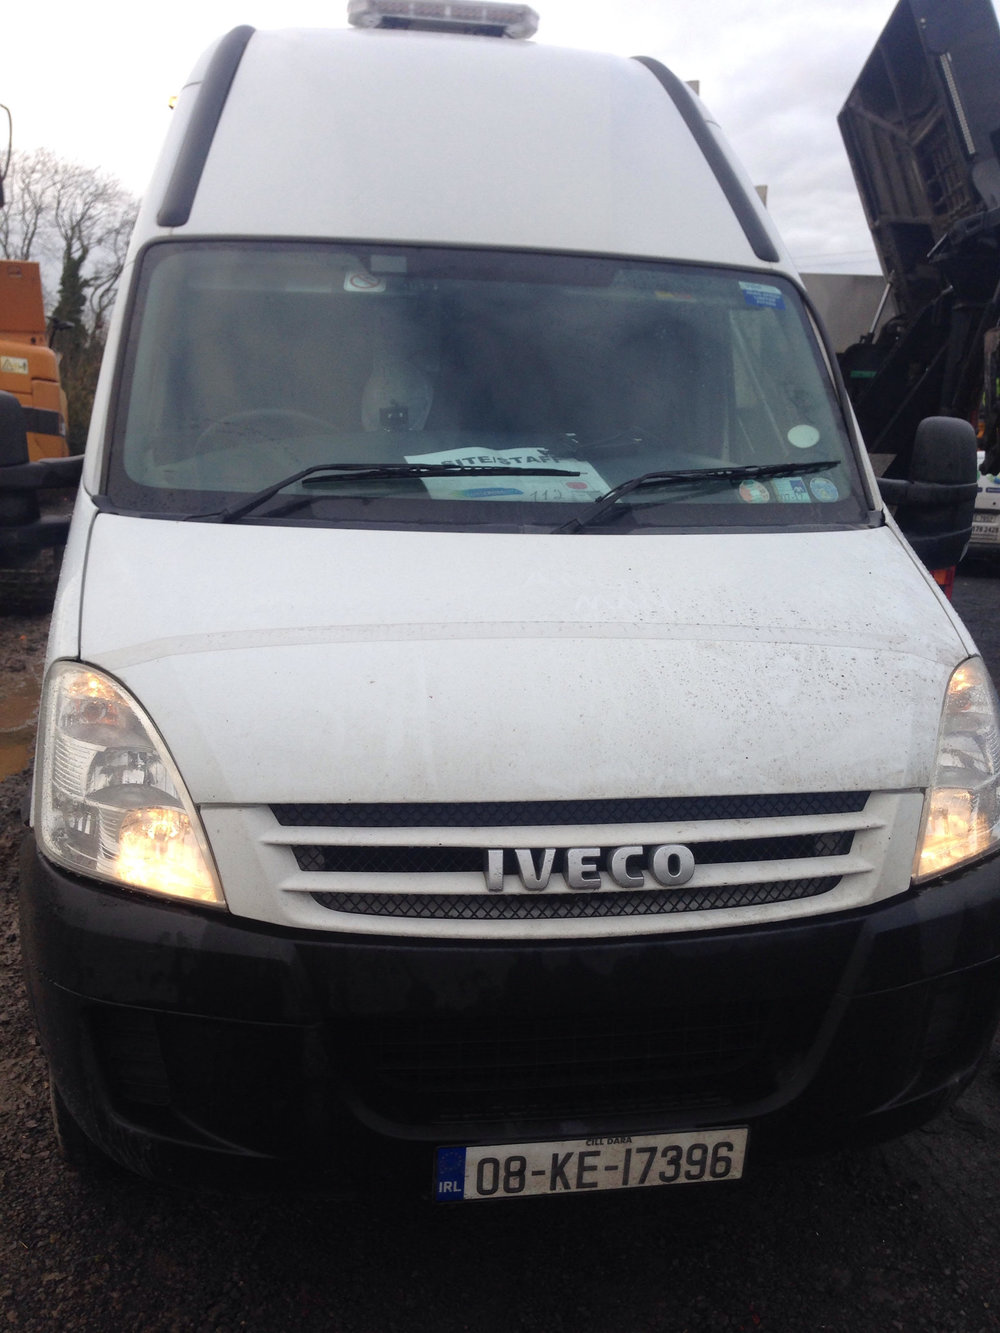 iveco daily ecu remap speed limiter vmax.jpg